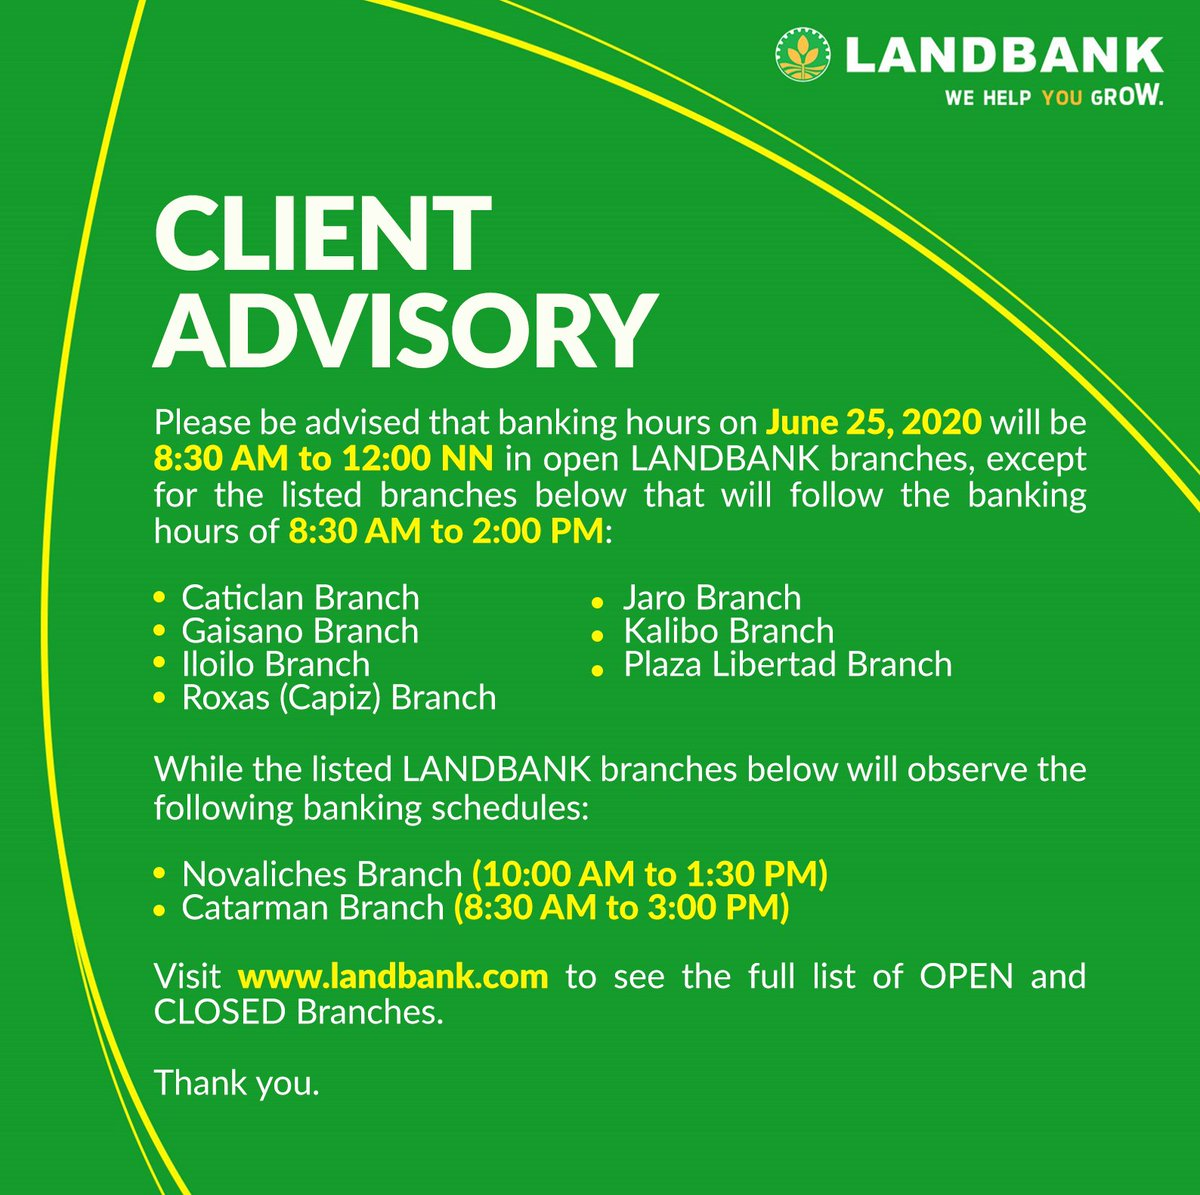 #LANDBANKClientAdvisory  To see the full list of OPEN branches, visit https://t.co/z8I58m4hwN  To see the full list of CLOSED branches, visit https://t.co/Uu1Lt77dCF https://t.co/k0bqg5vLOo